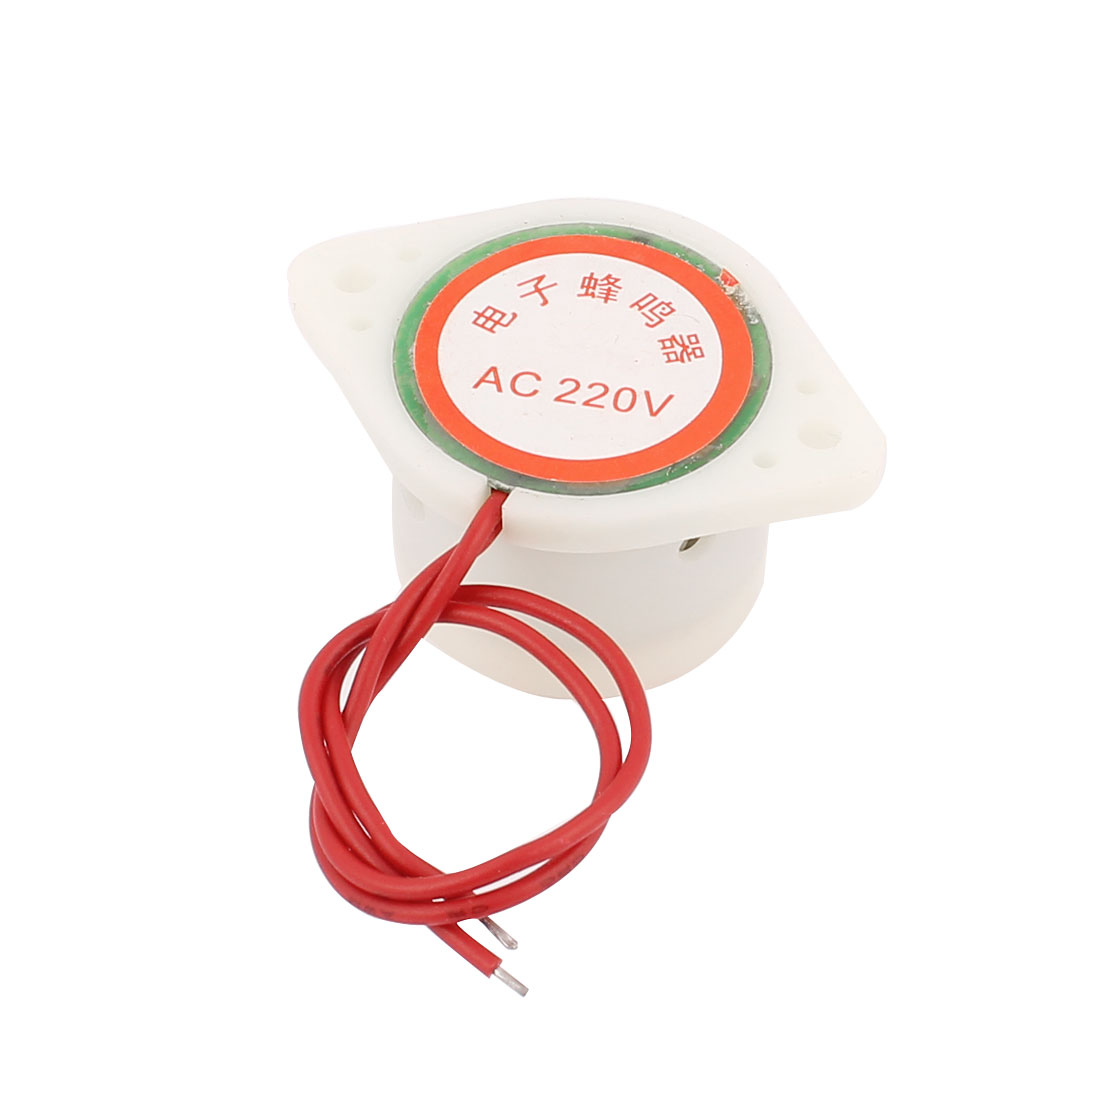 AC 220V Industrial Electronic 2-Wires Cylinder Music Sound Buzzer White